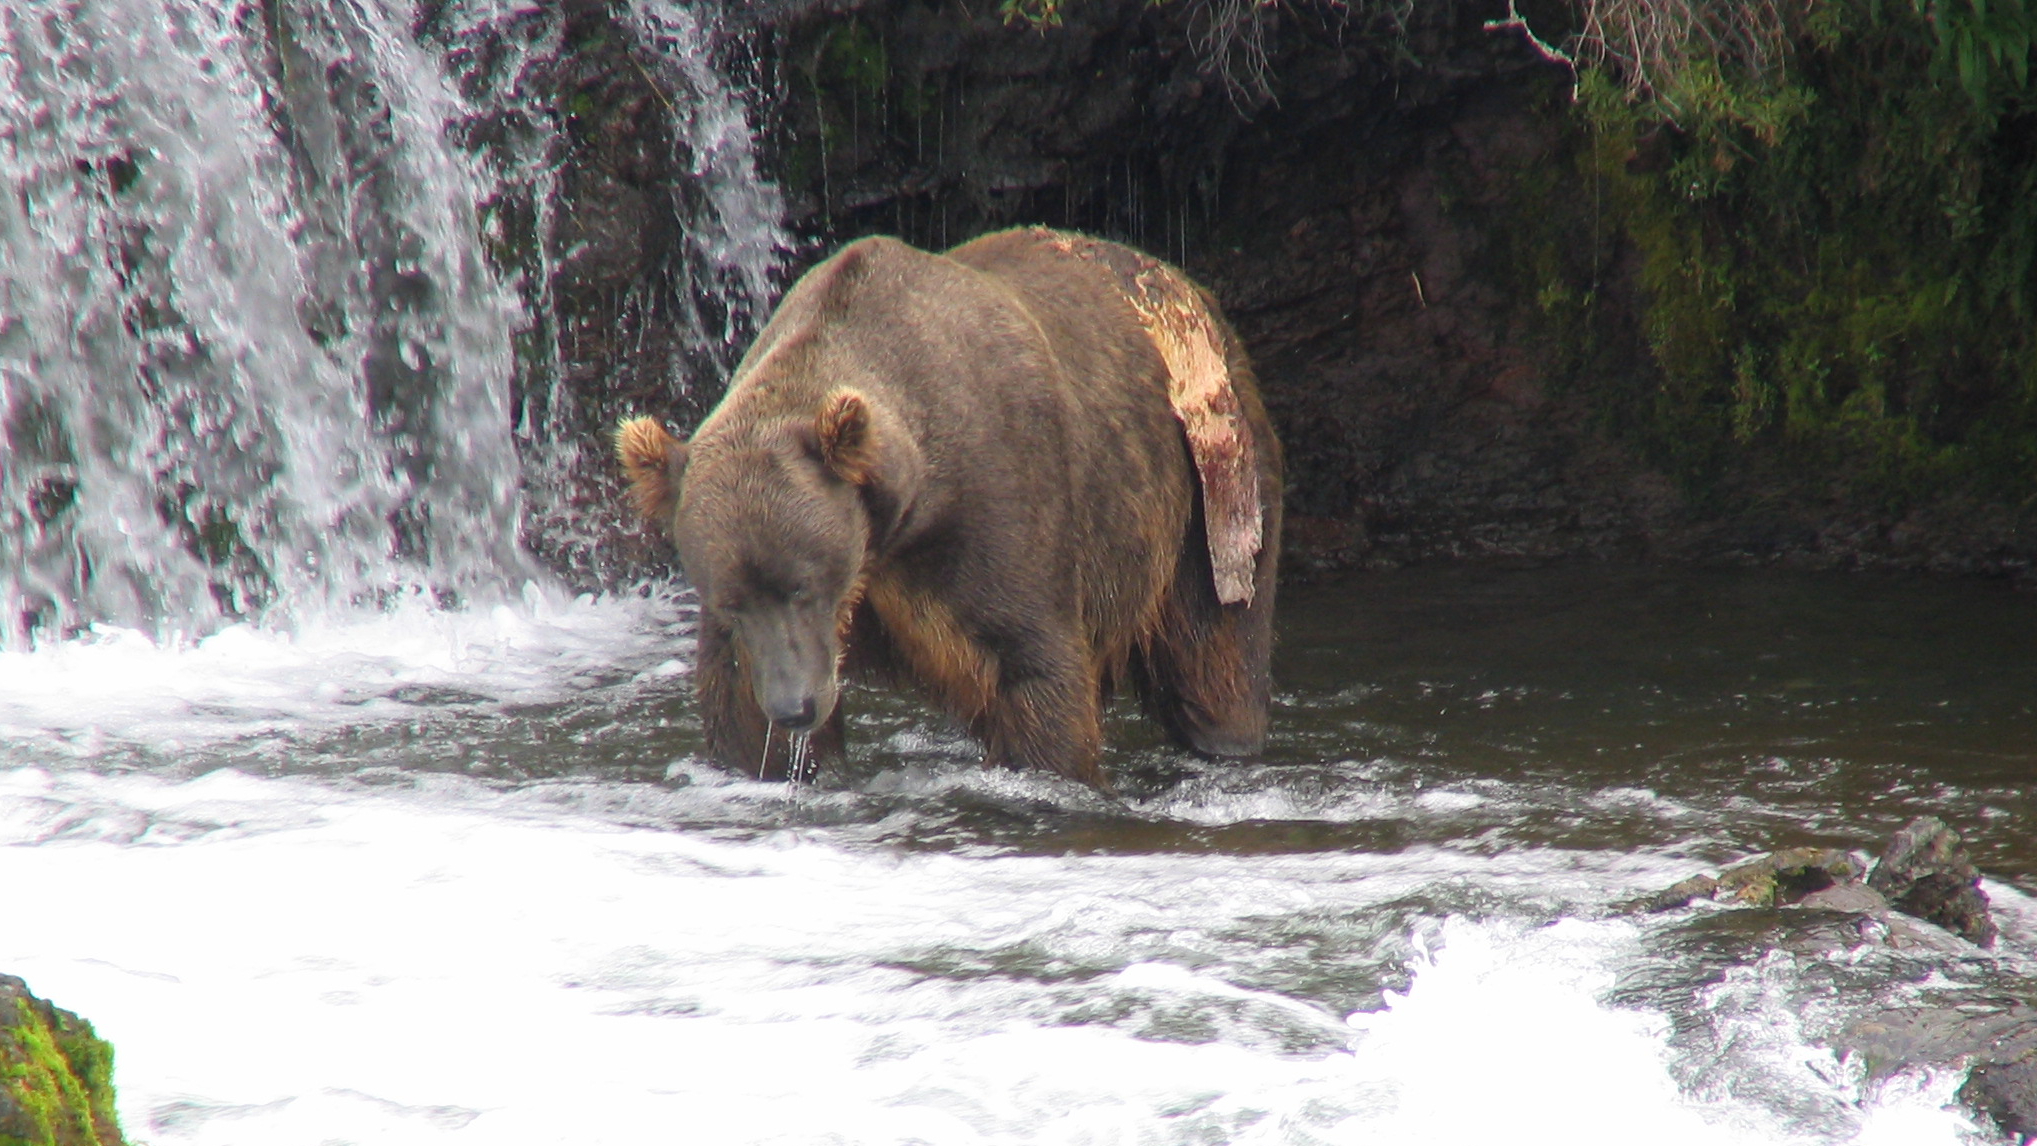 Bear standing in shallow water in a corner of a waterfall. Bear is facing toward camera and has large flap of skin hanging from its left hip.